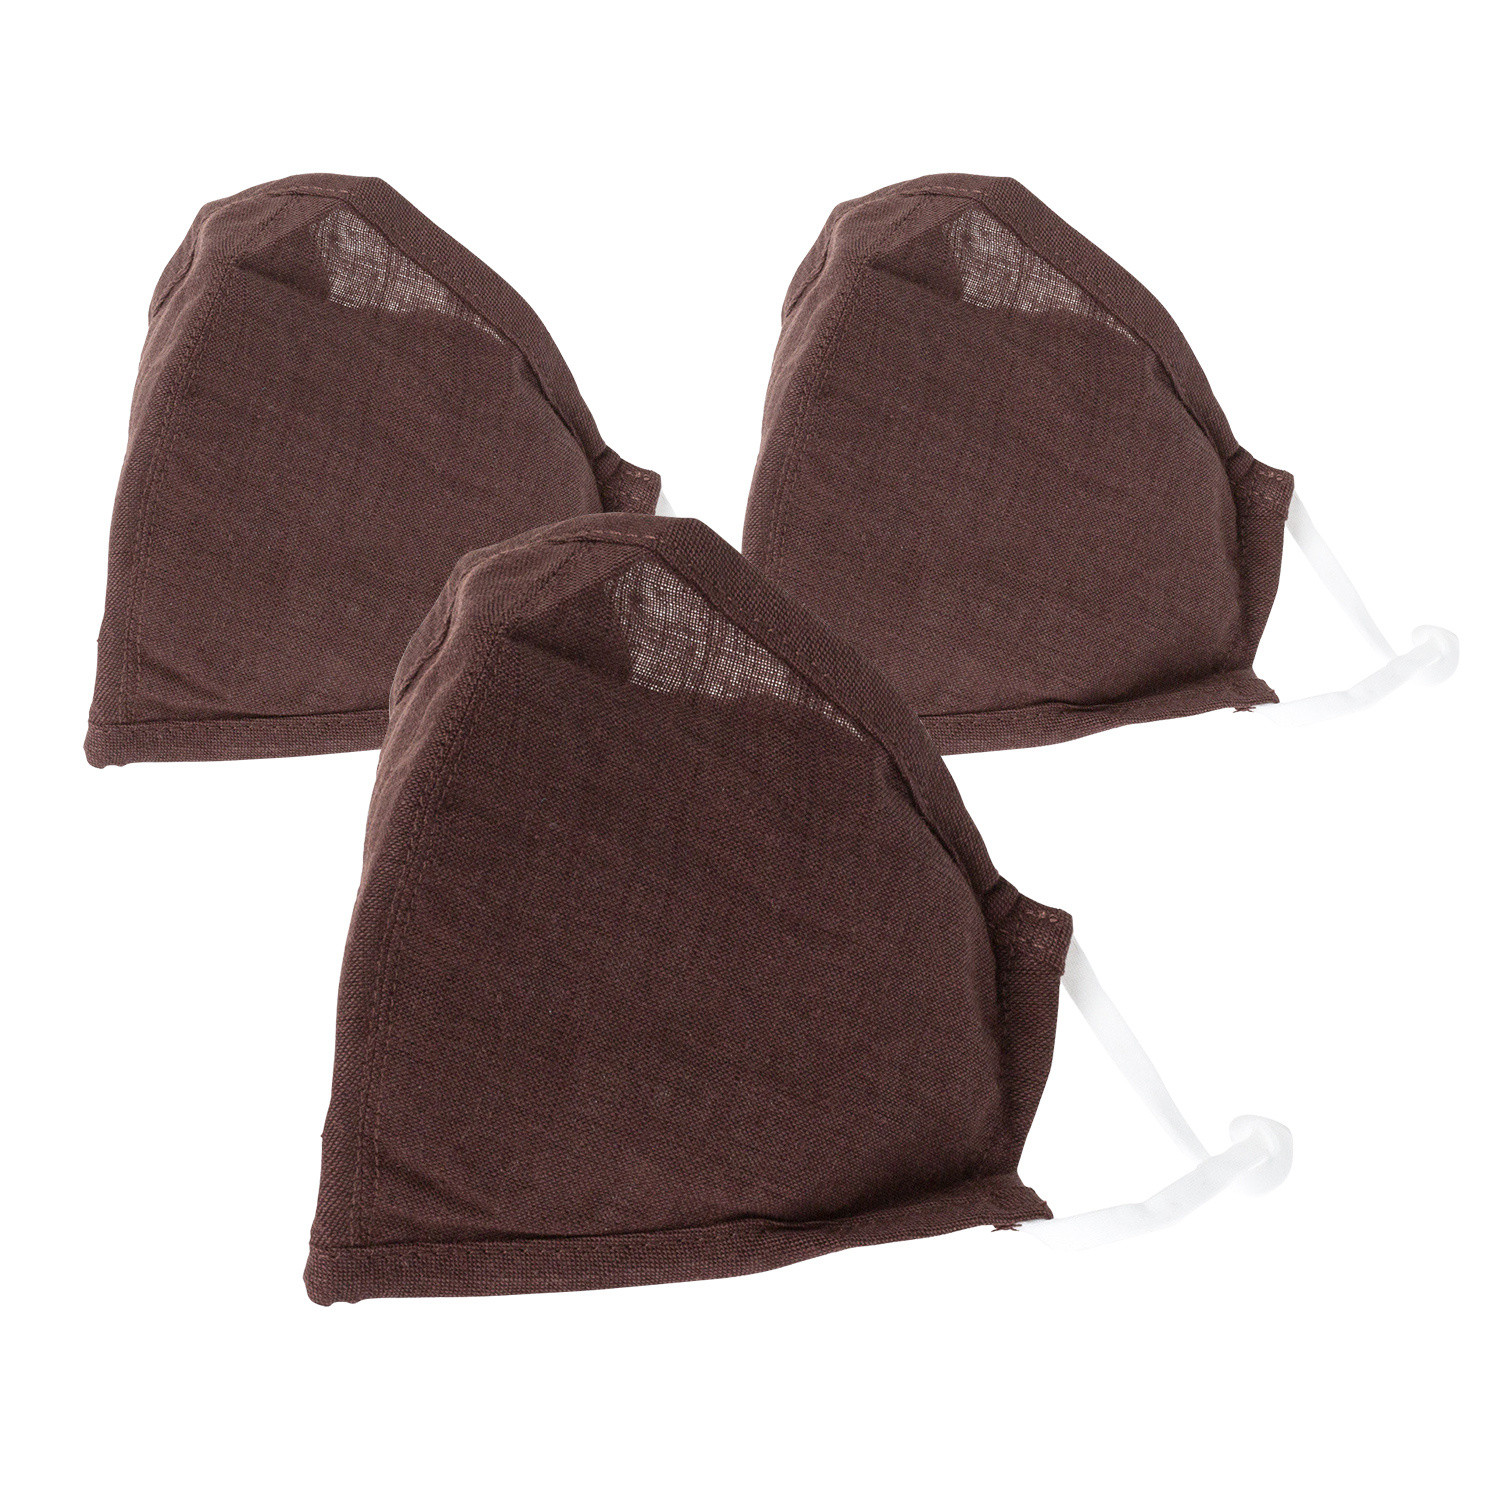 Reusable/Washable Dark Brown Face Covering